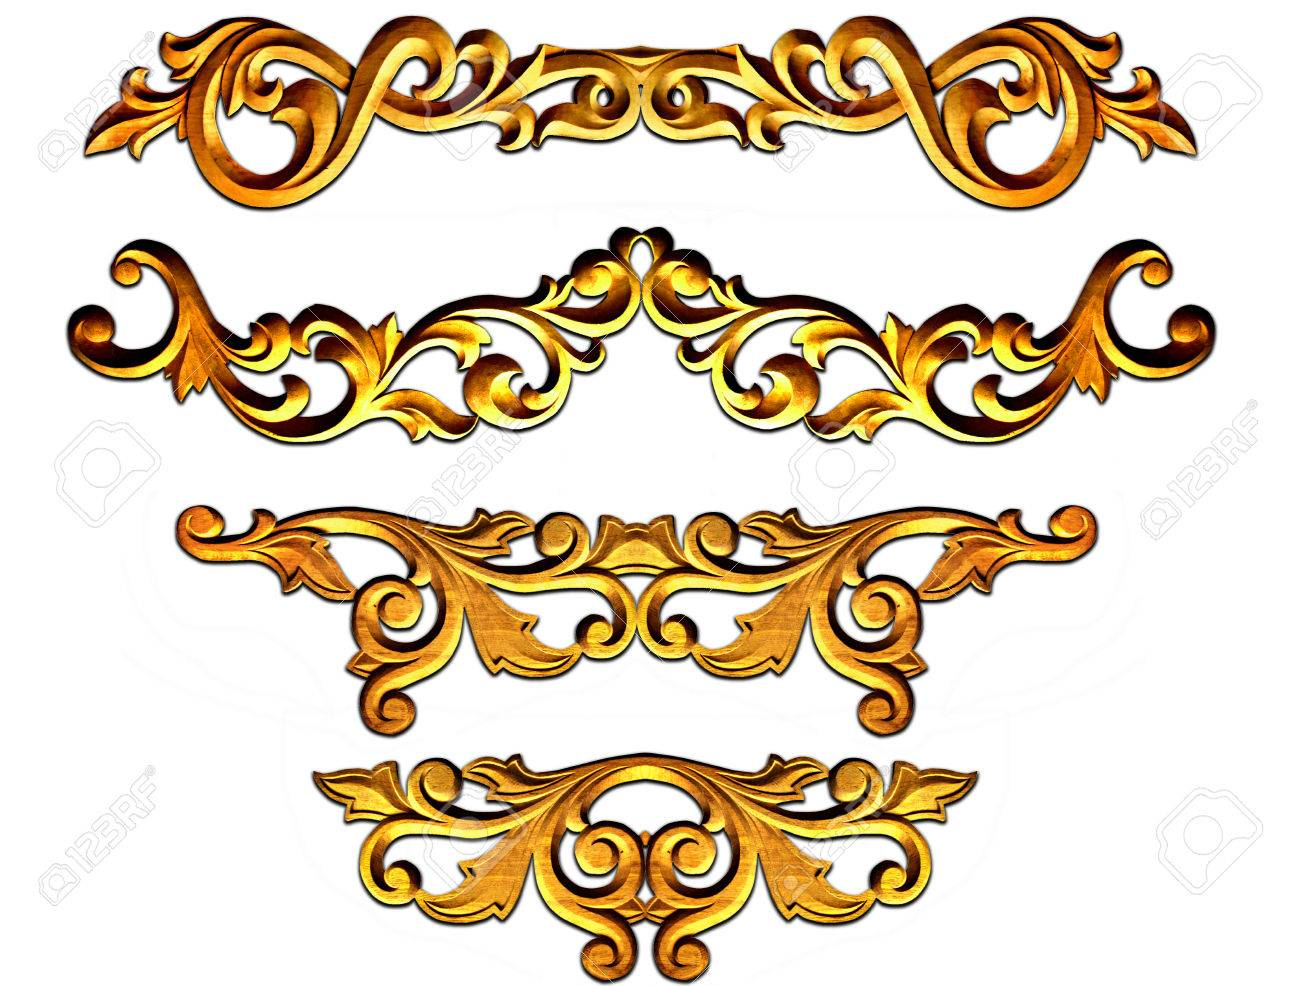 gold ornate baroque frame elements for design stock photo picture